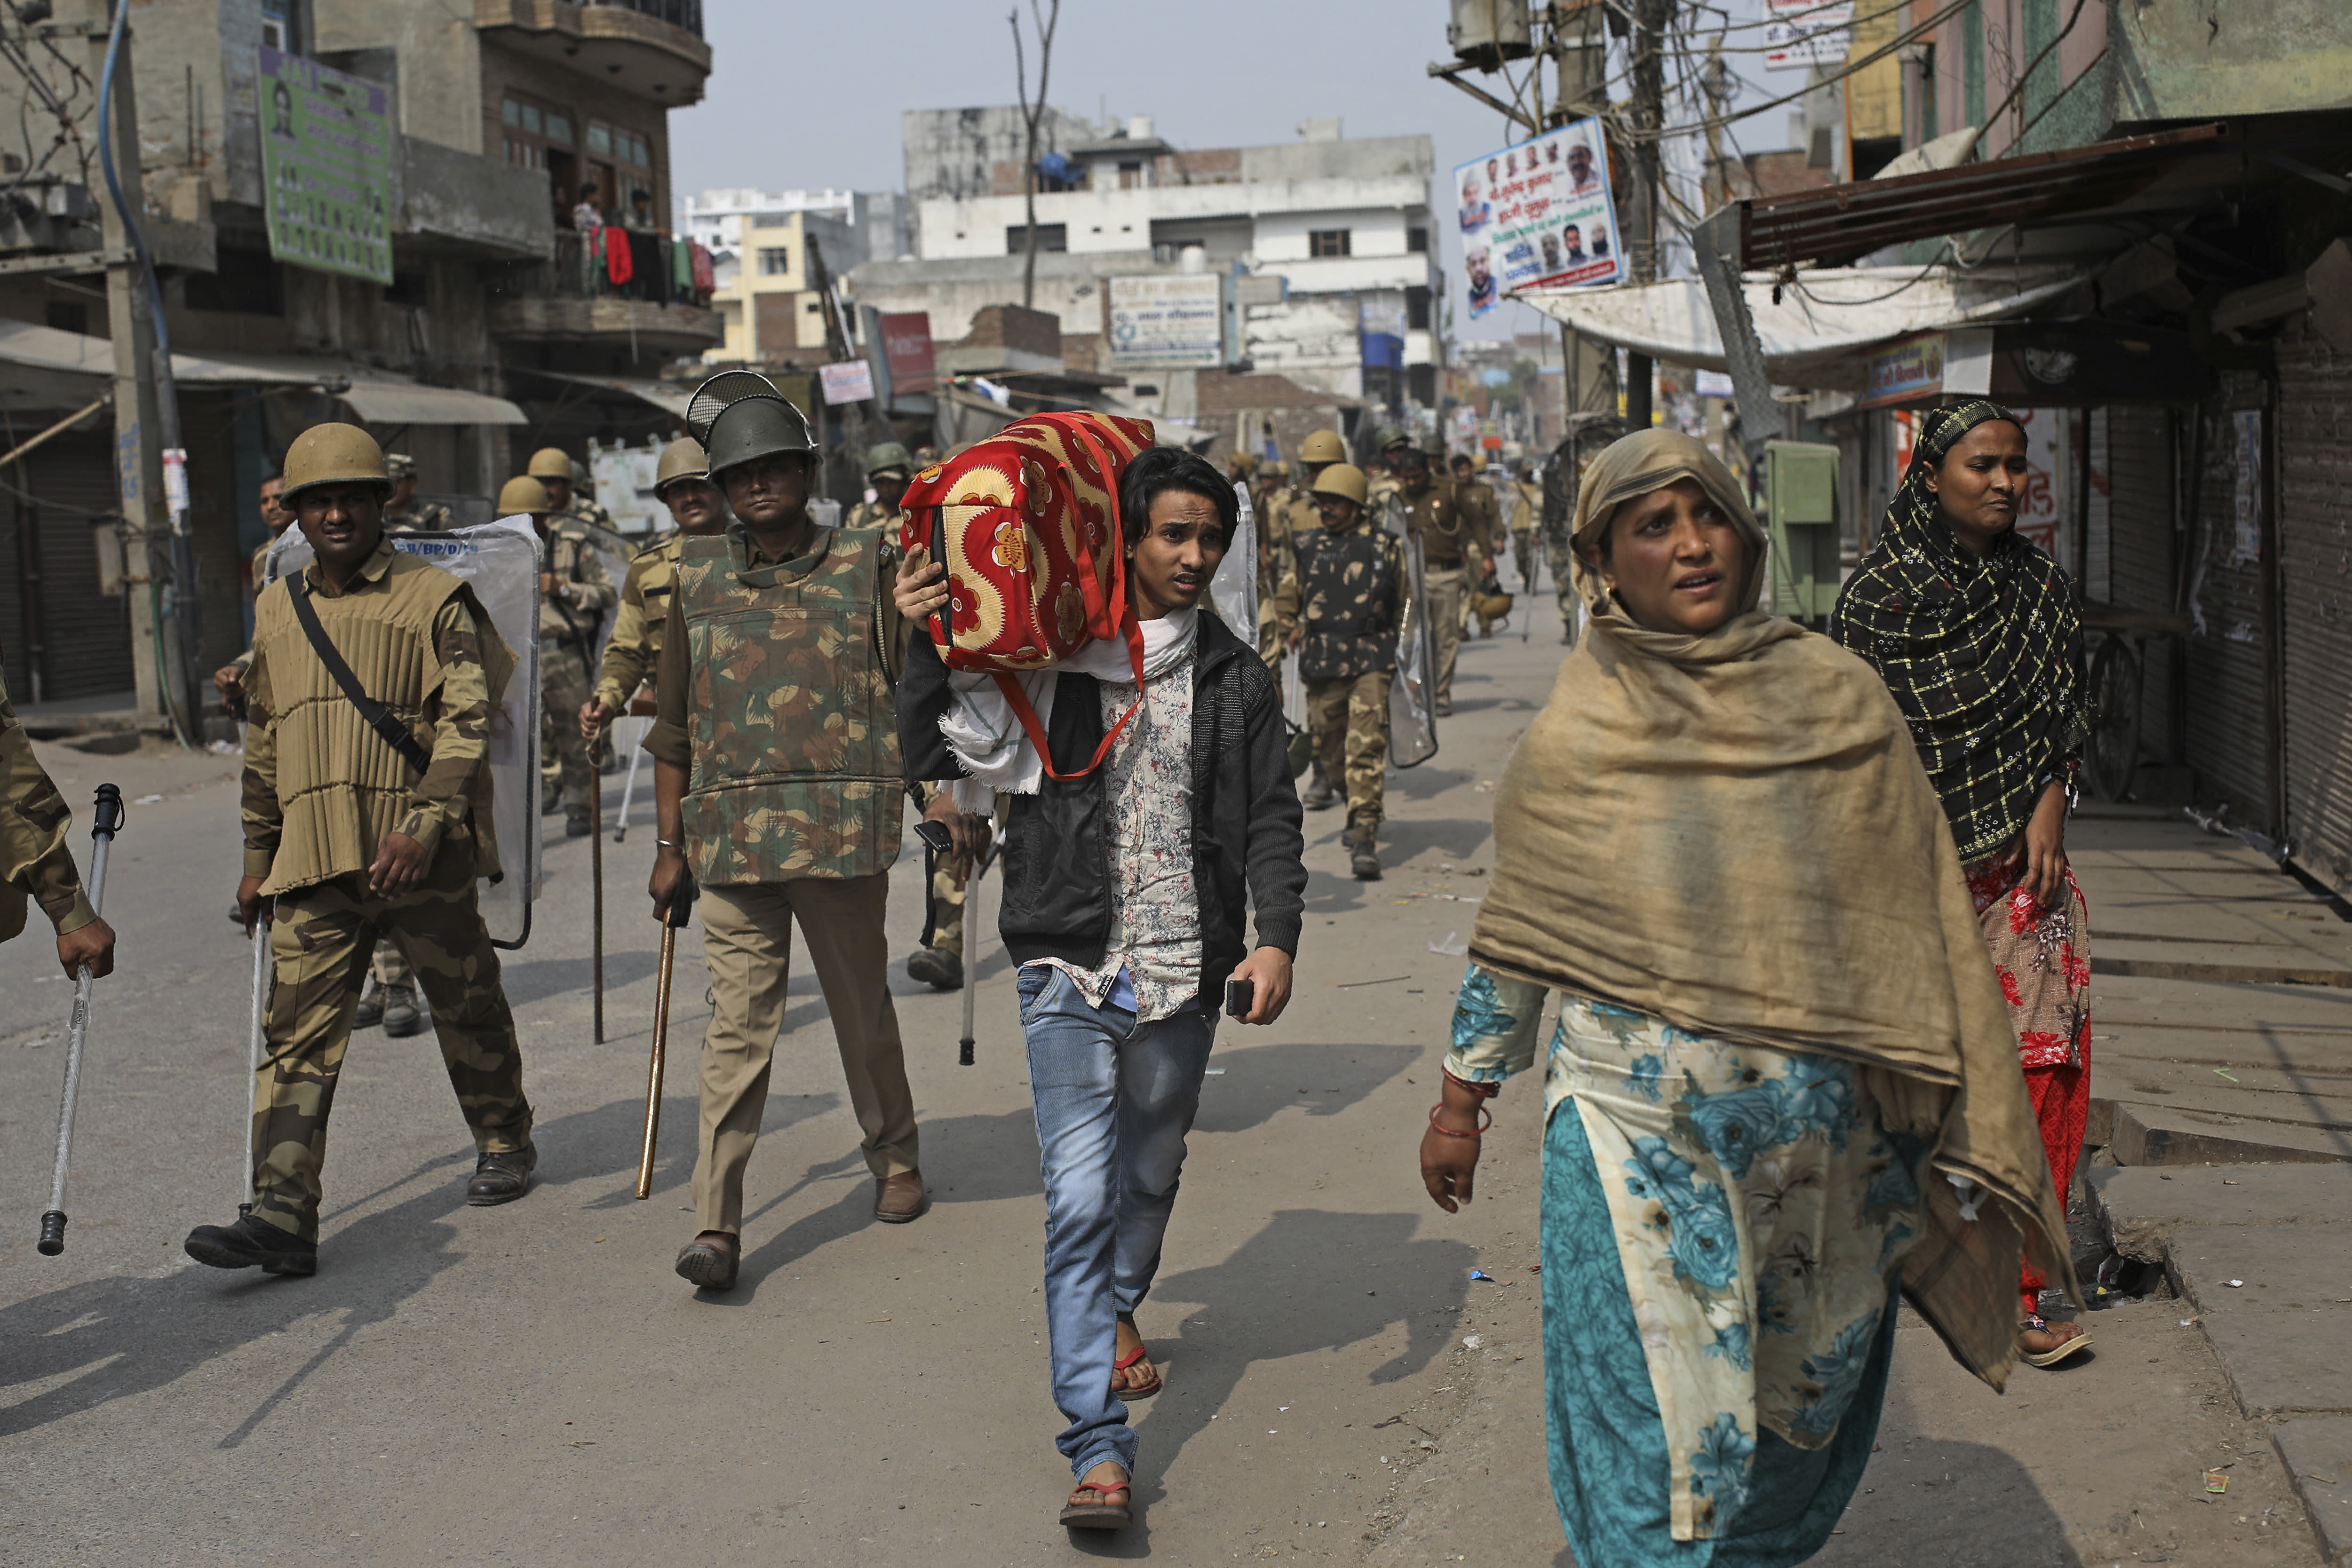 An Indian Muslim family leaves the area as Indian paramilitary soldiers patrol a street vandalized in Tuesday's violence in New Delhi, India, Thursday, Feb. 27, 2020. India accused a U.S. government commission of politicizing communal violence in New Delhi that killed at least 30 people and injured more than 200 as President Donald Trump was visiting the country. The violent clashes between Hindu and Muslim mobs were the capital's worst communal riots in decades and saw shops, Muslim shrines and public vehicles go up in flames. (AP Photo/Altaf Qadri)